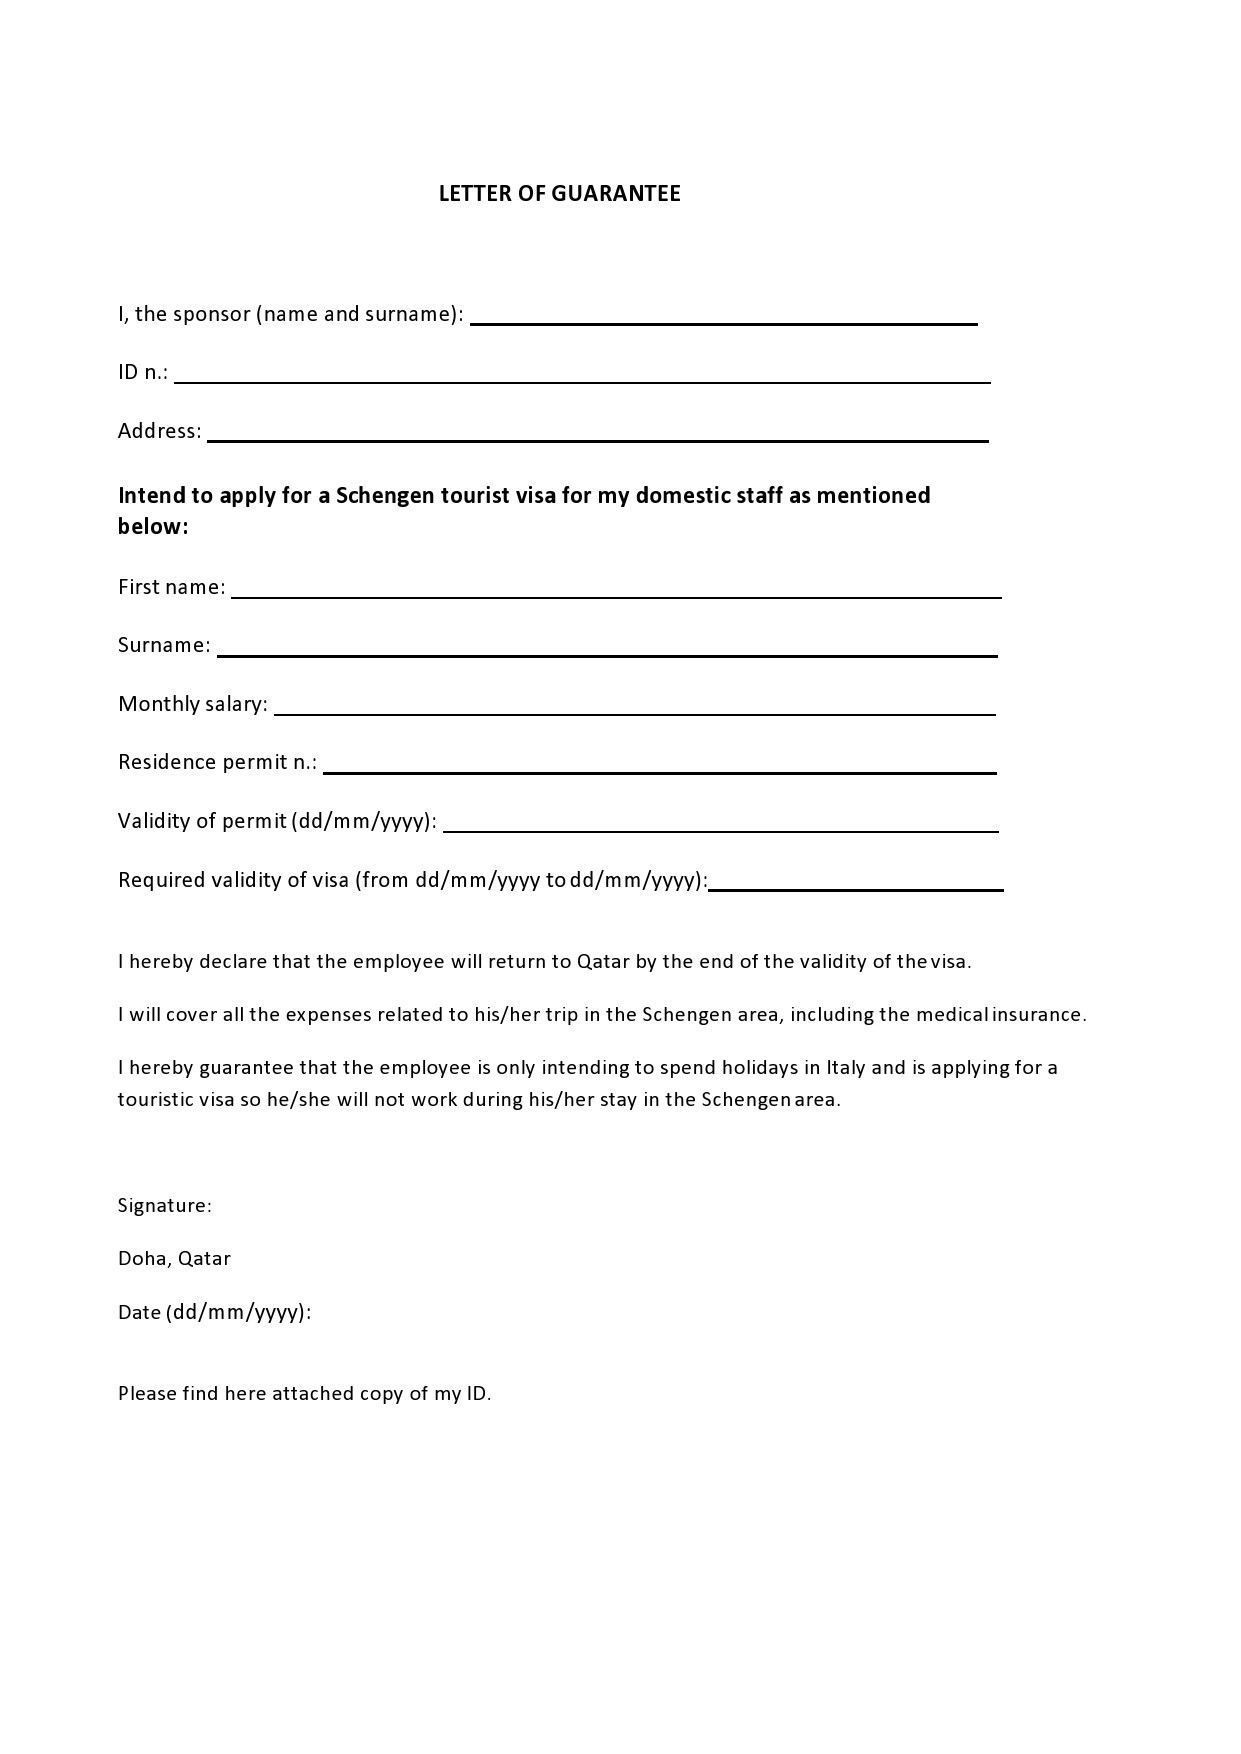 Free letter of guarantee 12